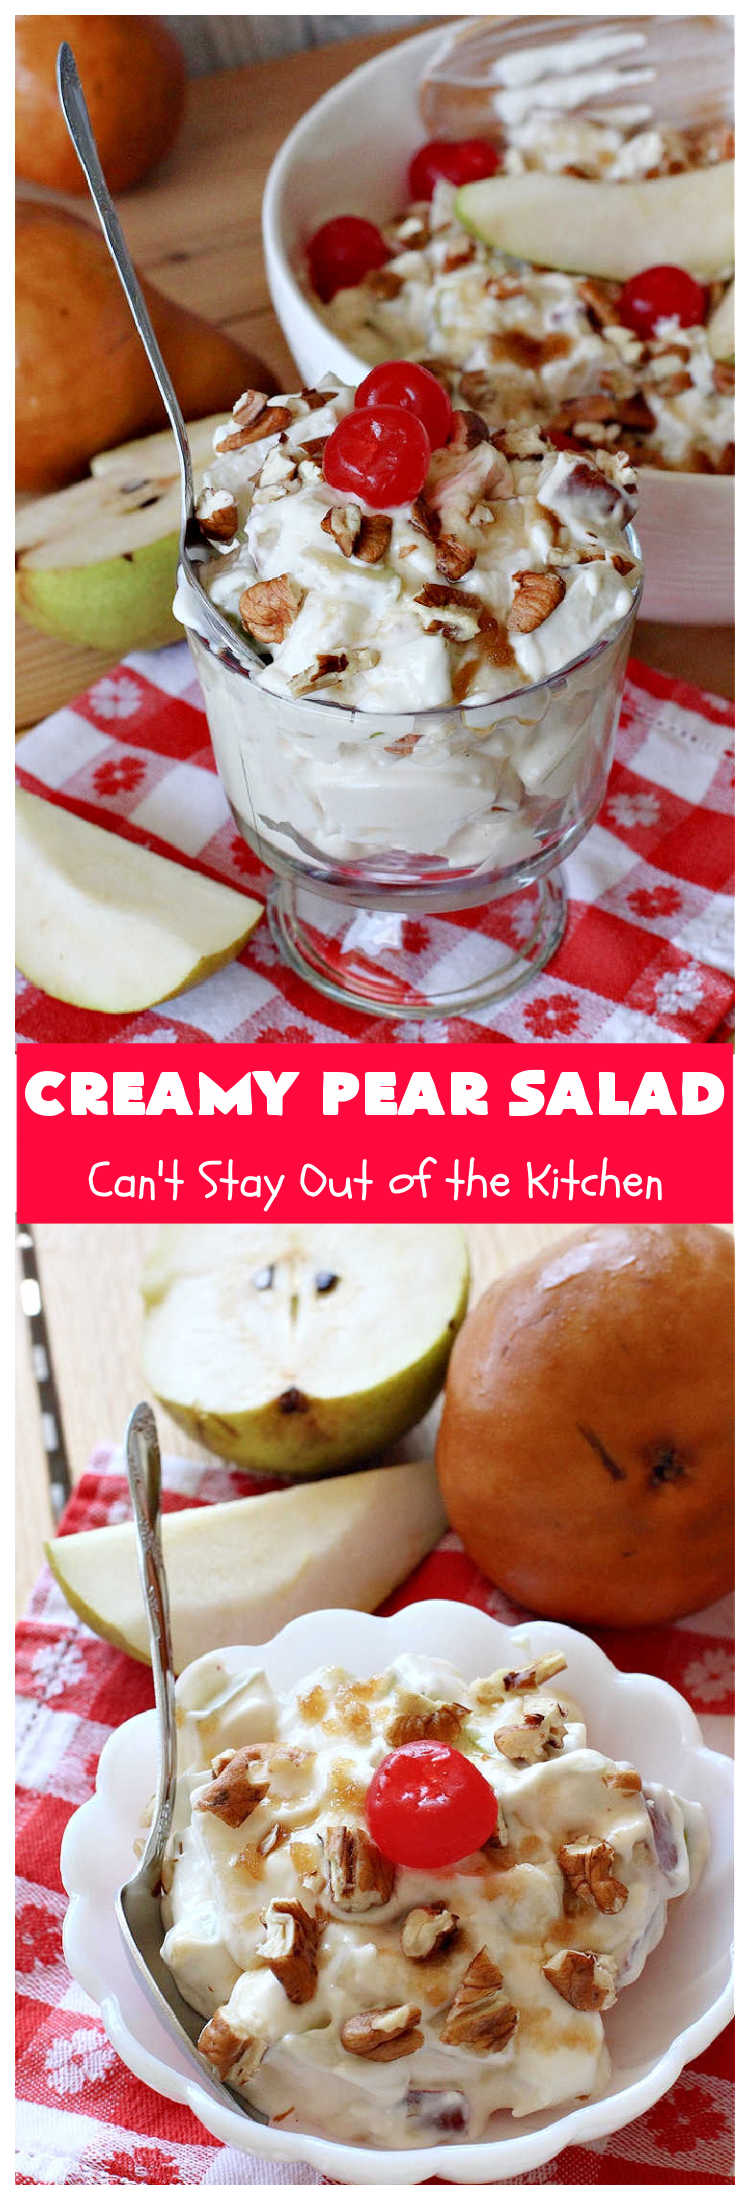 Creamy Pear Salad | Can't Stay Out of the Kitchen | this delectable #fruit #salad is so quick & easy to make up. It's terrific for company or #holiday dinners since it can be made in advance. #pears #CreamCheese #salad #CreamyPearSalad #FruitSalad